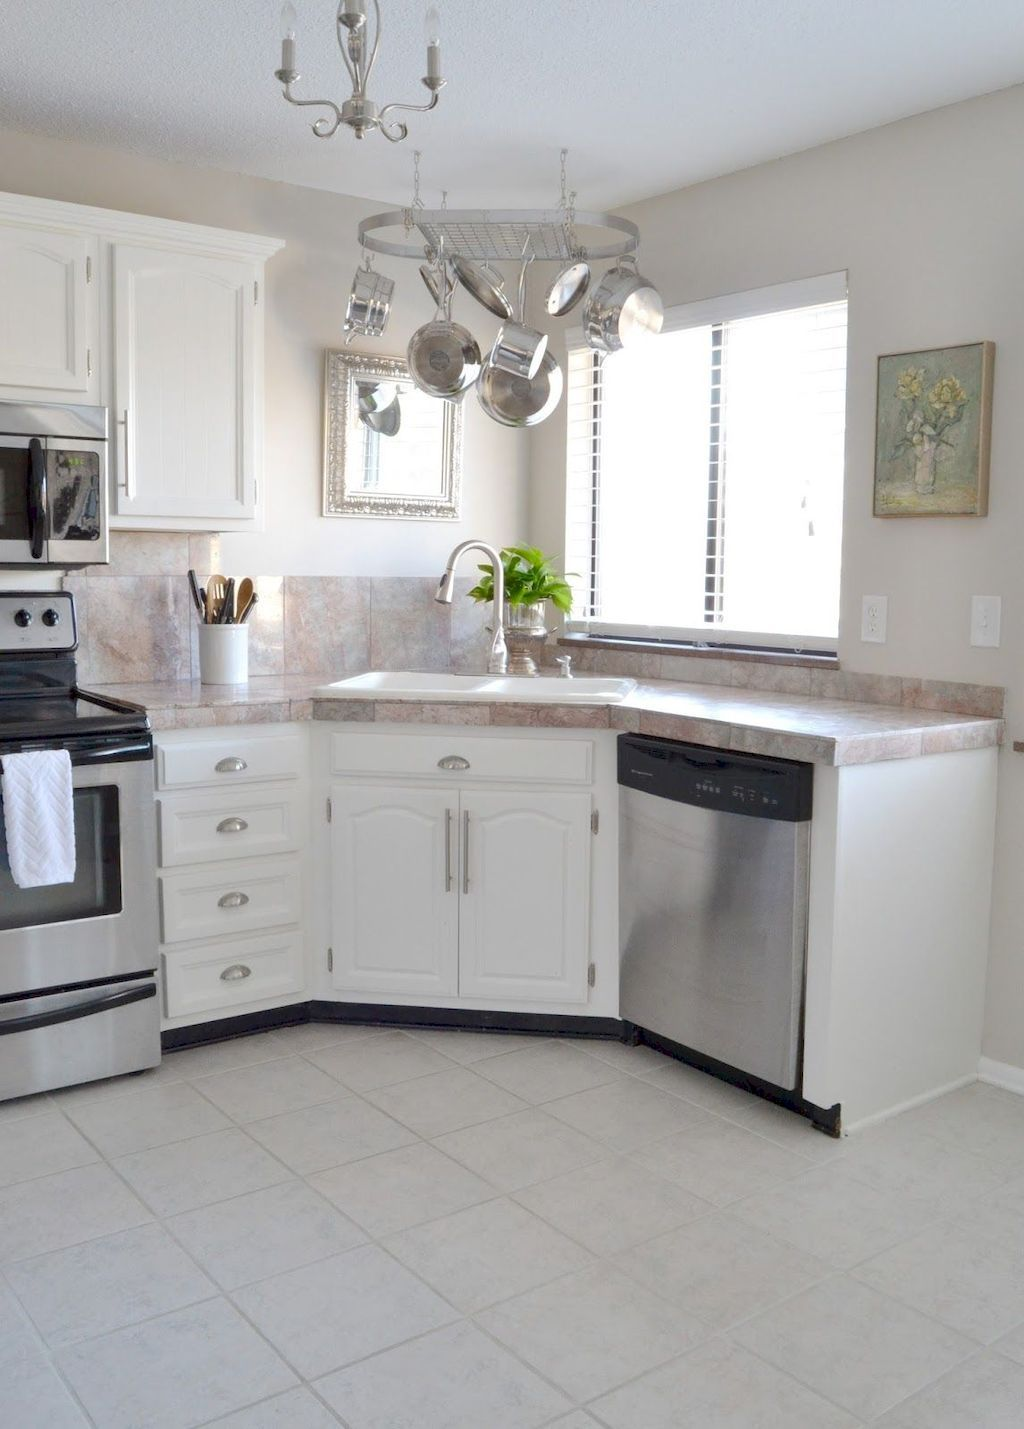 Small Kitchen Plan And Design For Small Room